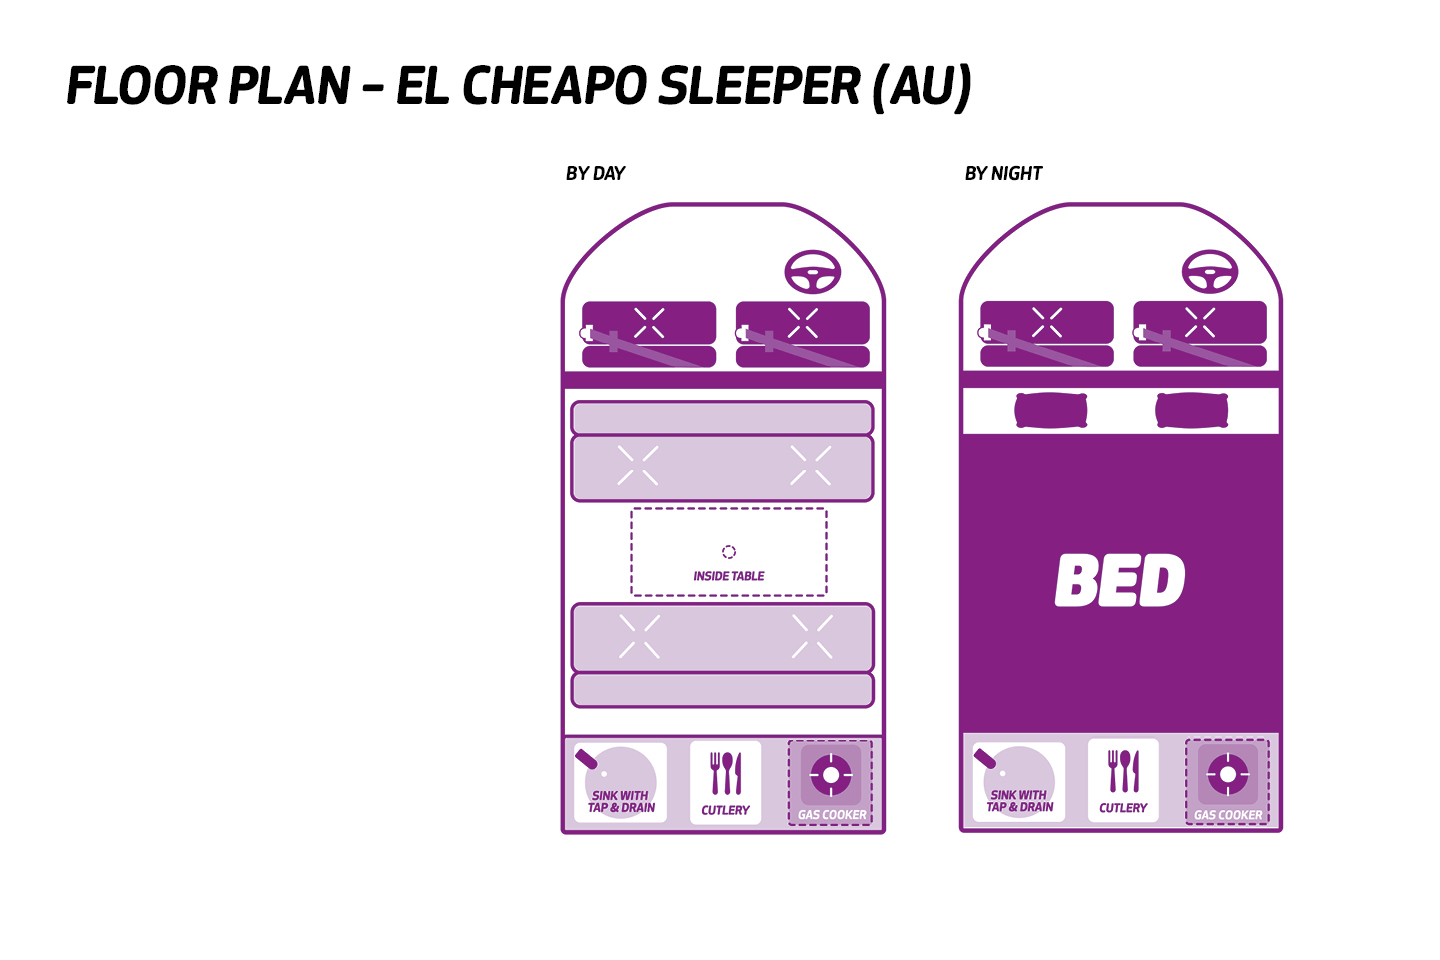 EL CHEAPO SLEEPER AU